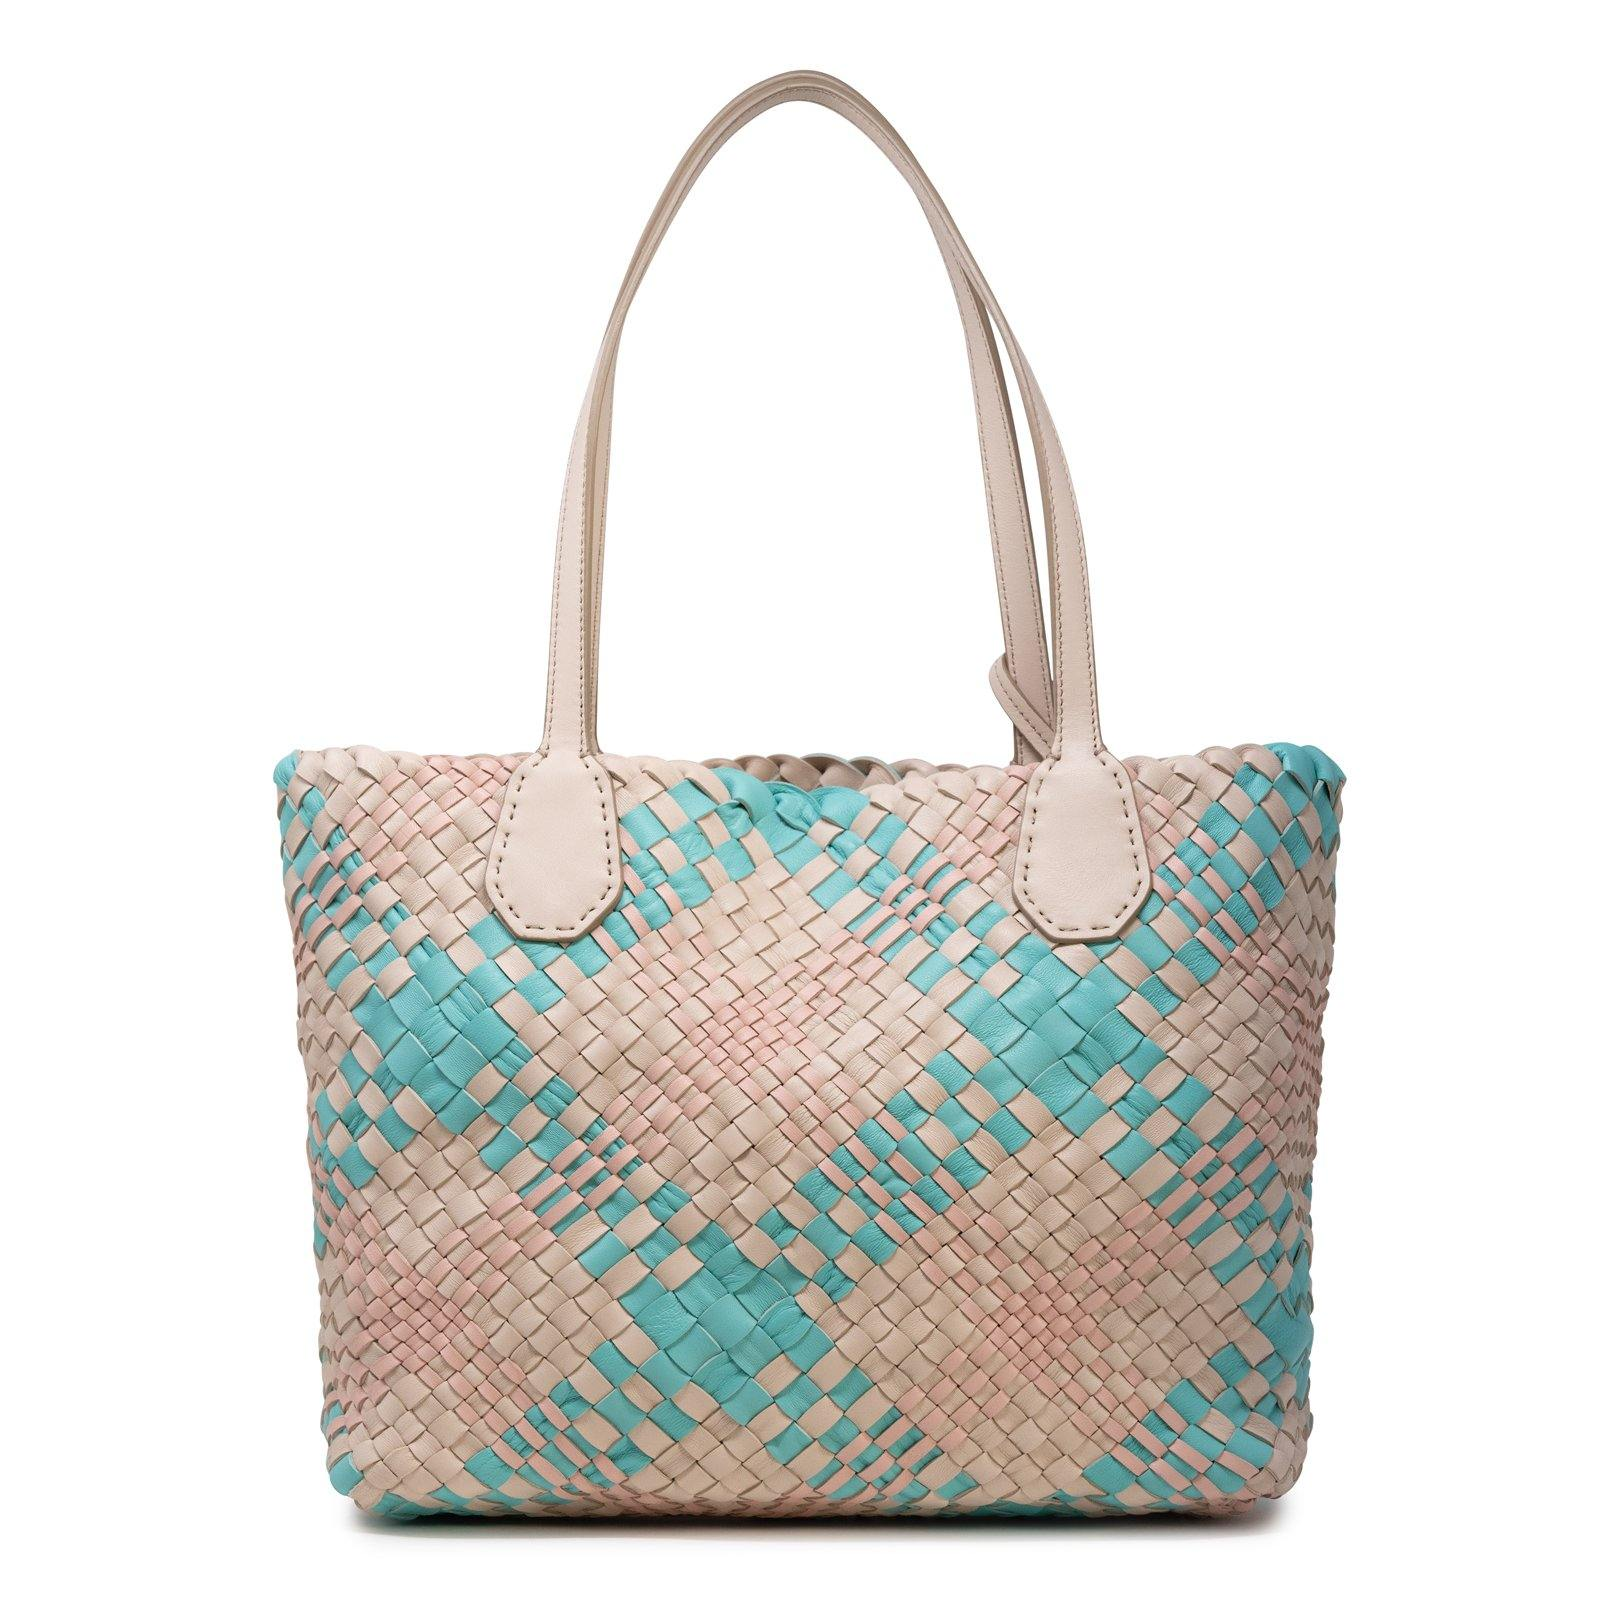 Women Leather Intreccio Scozzese Bag in Sabbia, Tiffany and Pink